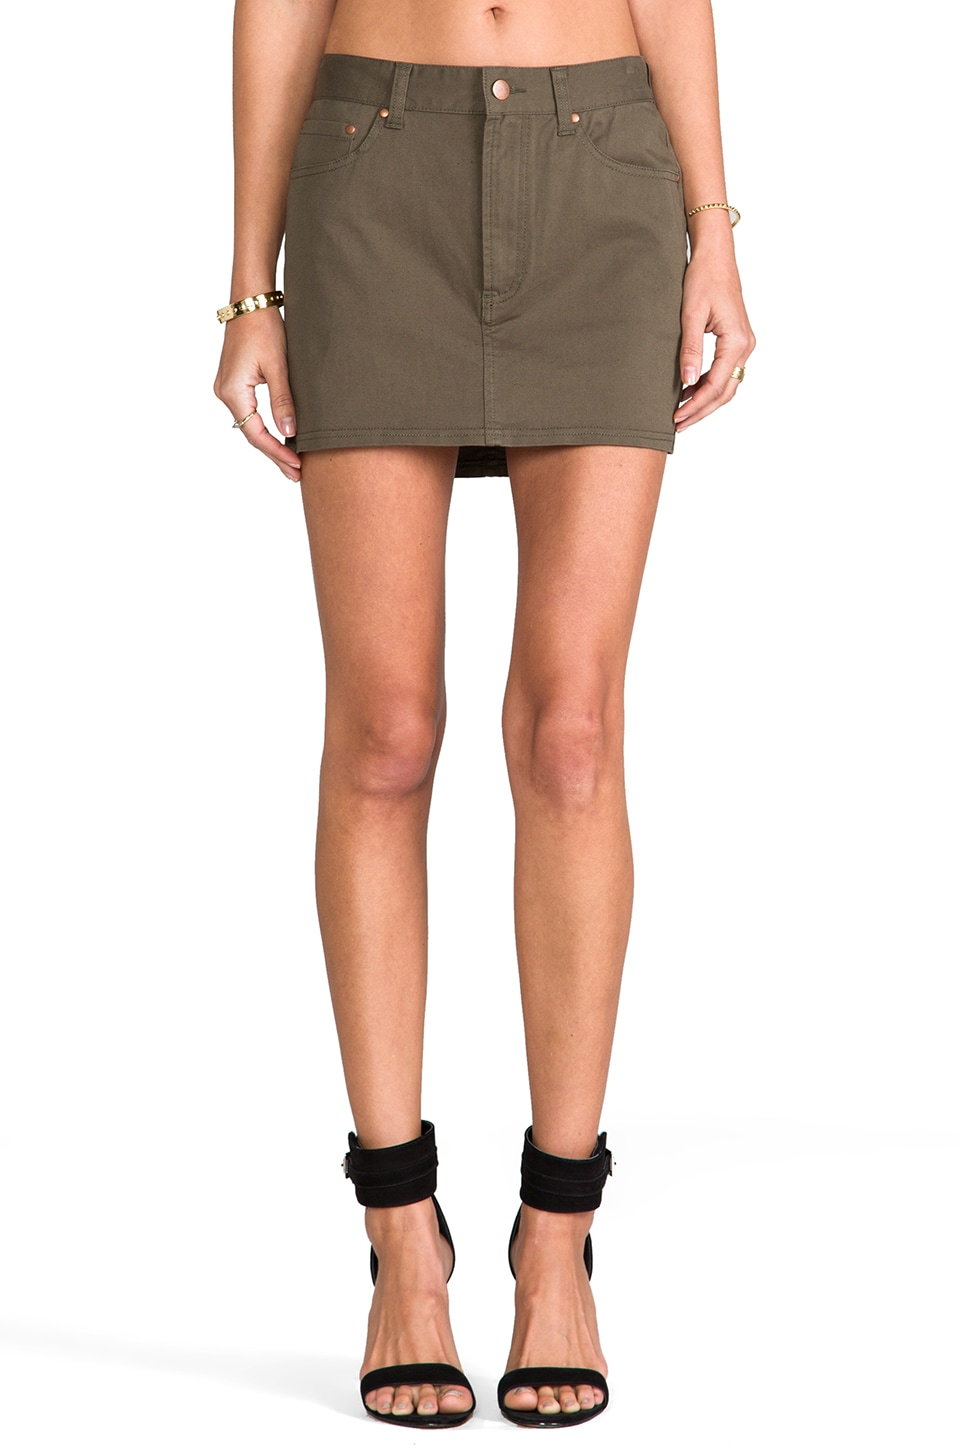 Lovers + Friends for REVOLVE Weekend Mini Skirt in Army Green